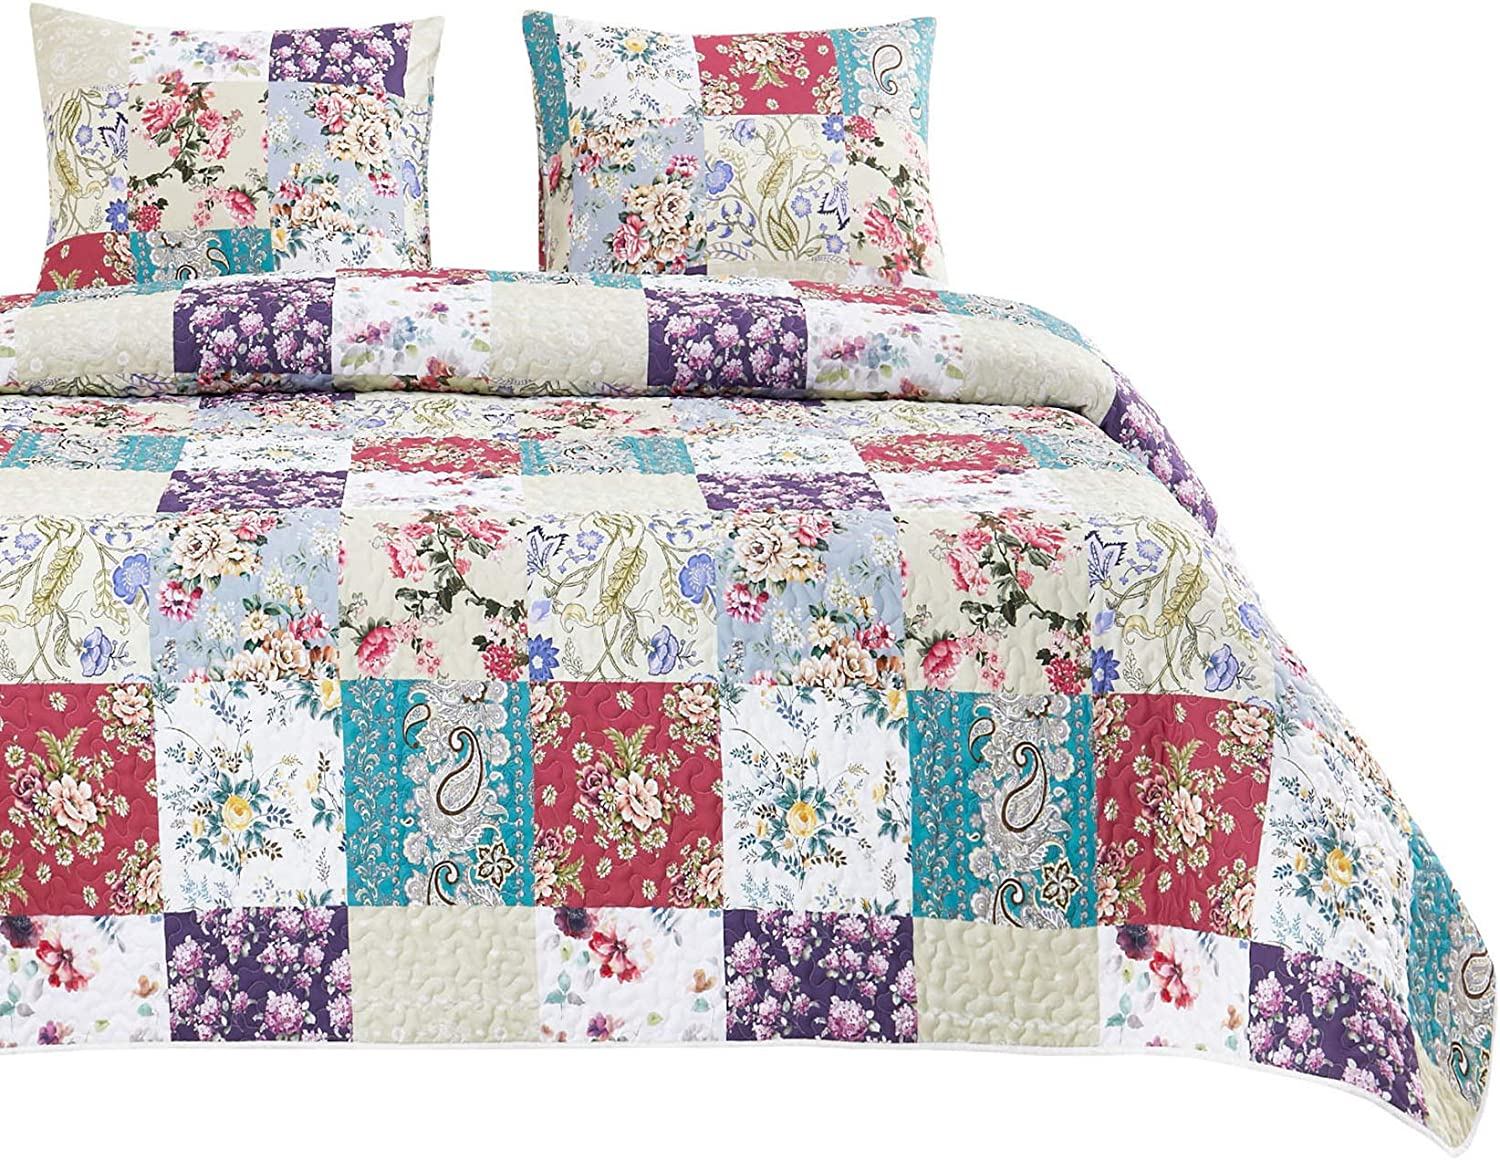 Wake In Cloud - Floral Patchwork Quilt Set, Flowers Leaves Paisley Botanical Plant Pattern Printed, Soft Microfiber Bedspread Coverlet Bedding (3pcs, King Size)